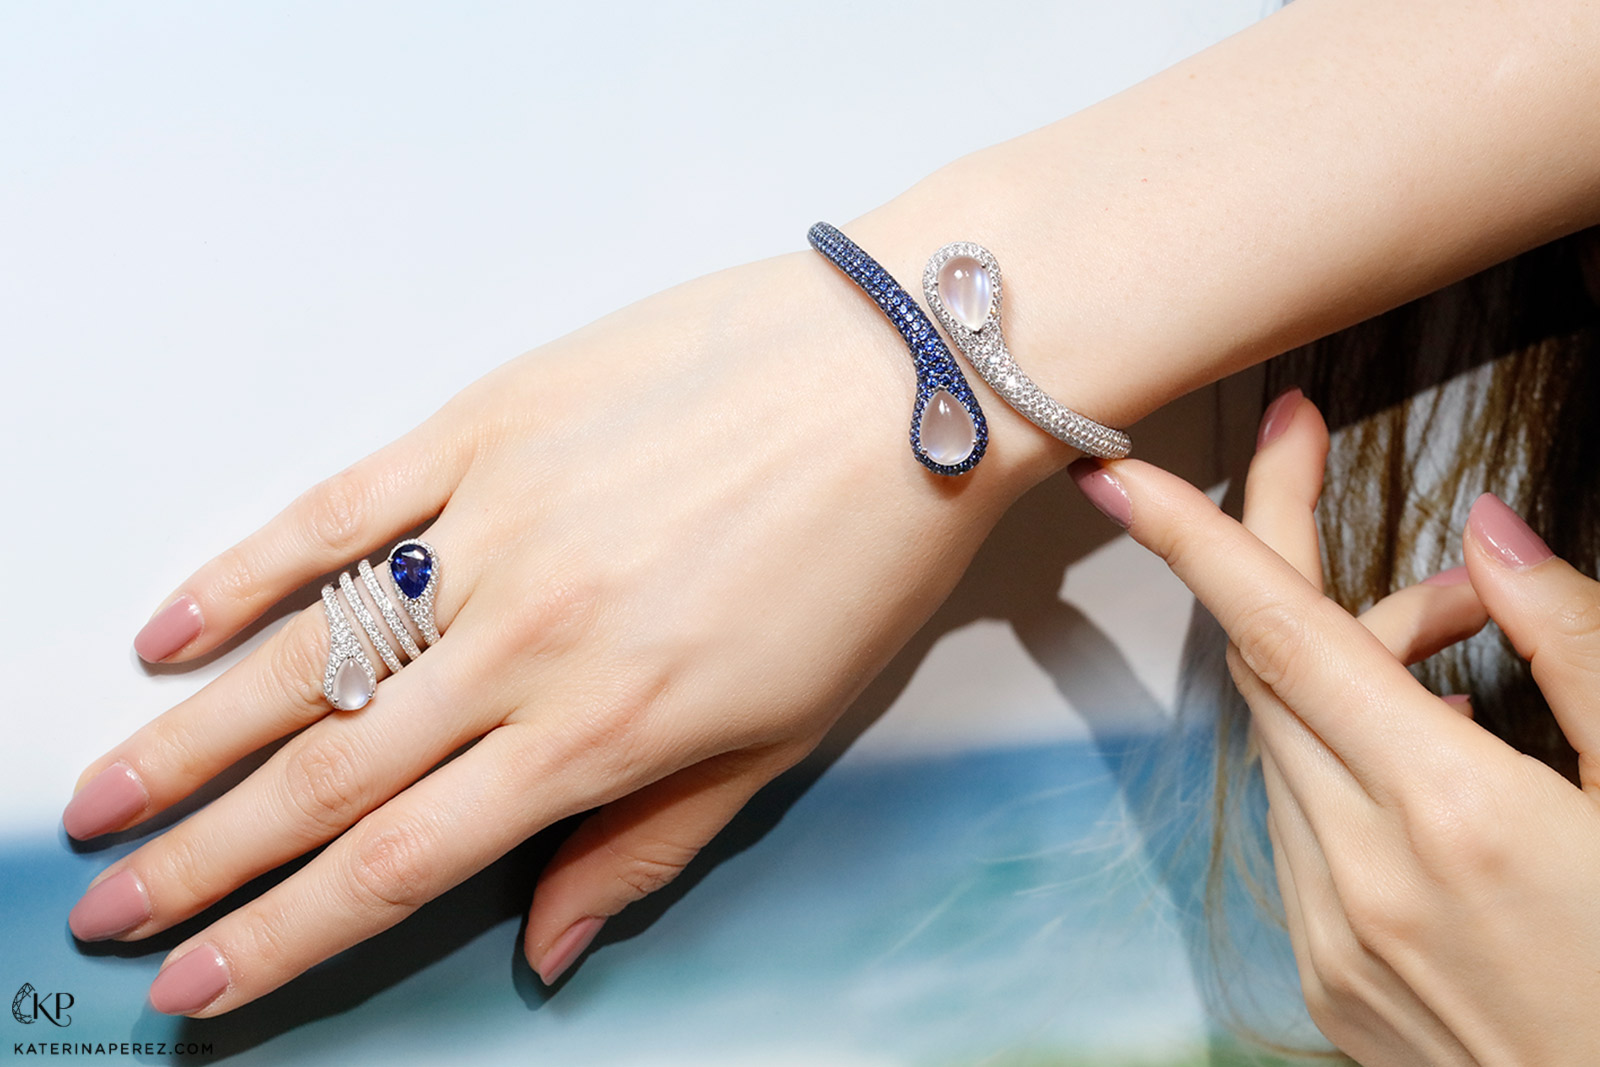 Maria Canale 'Drop' bangle and ring in moonstone, sapphire and diamonds